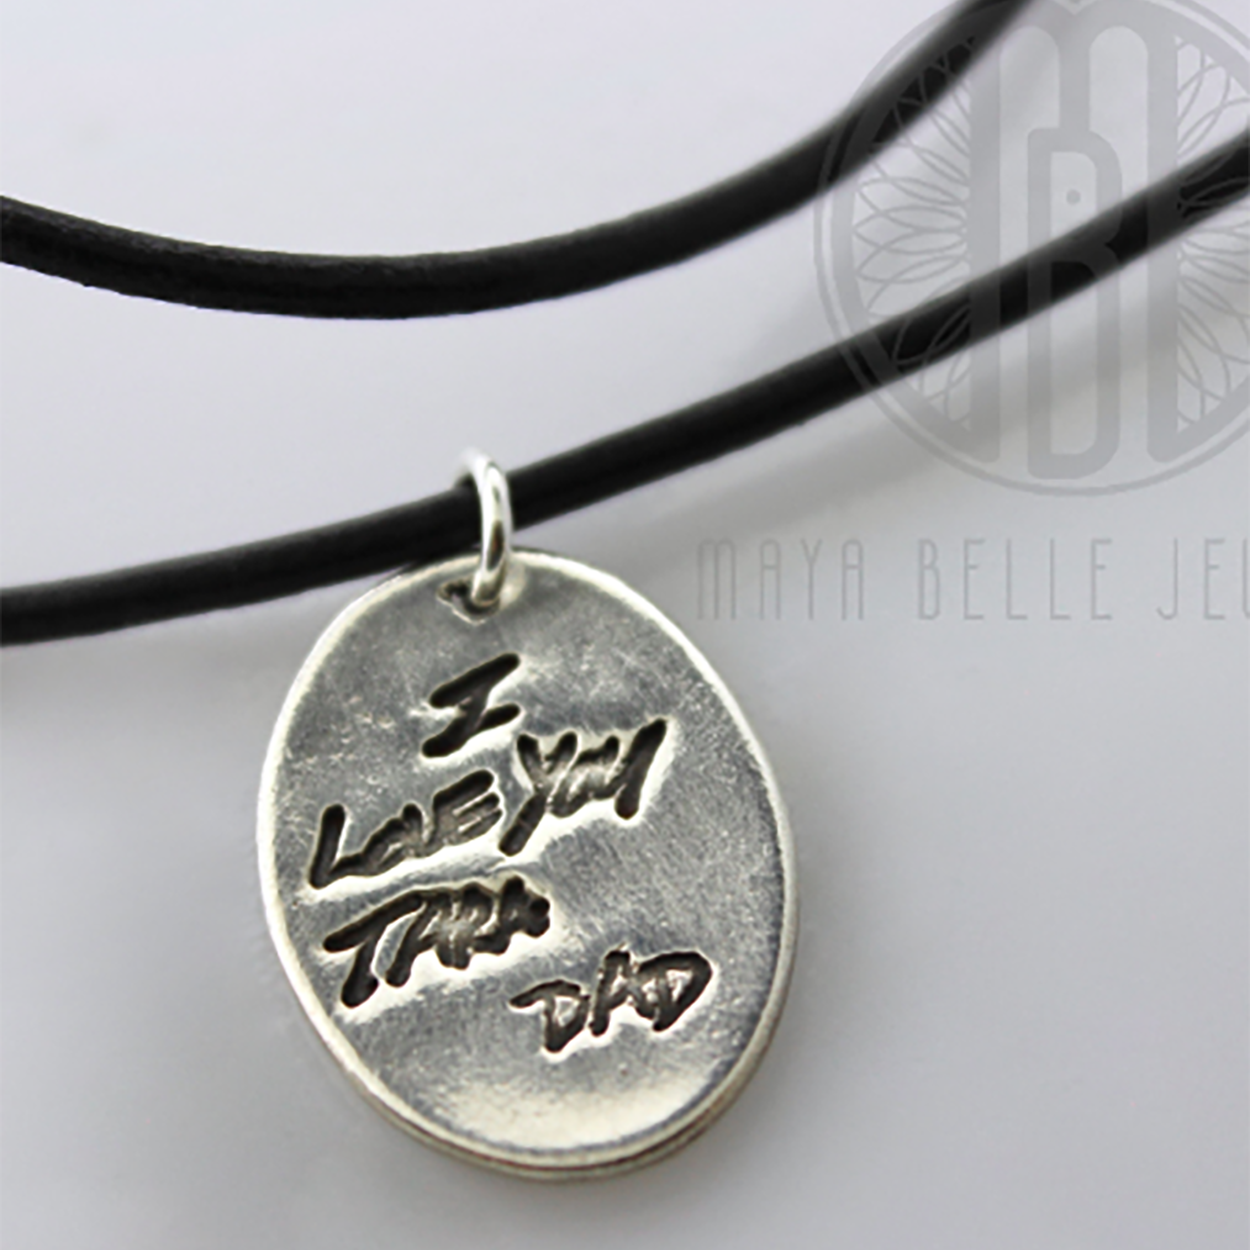 Handwriting Necklace on Leather Cord - Maya Belle Jewelry